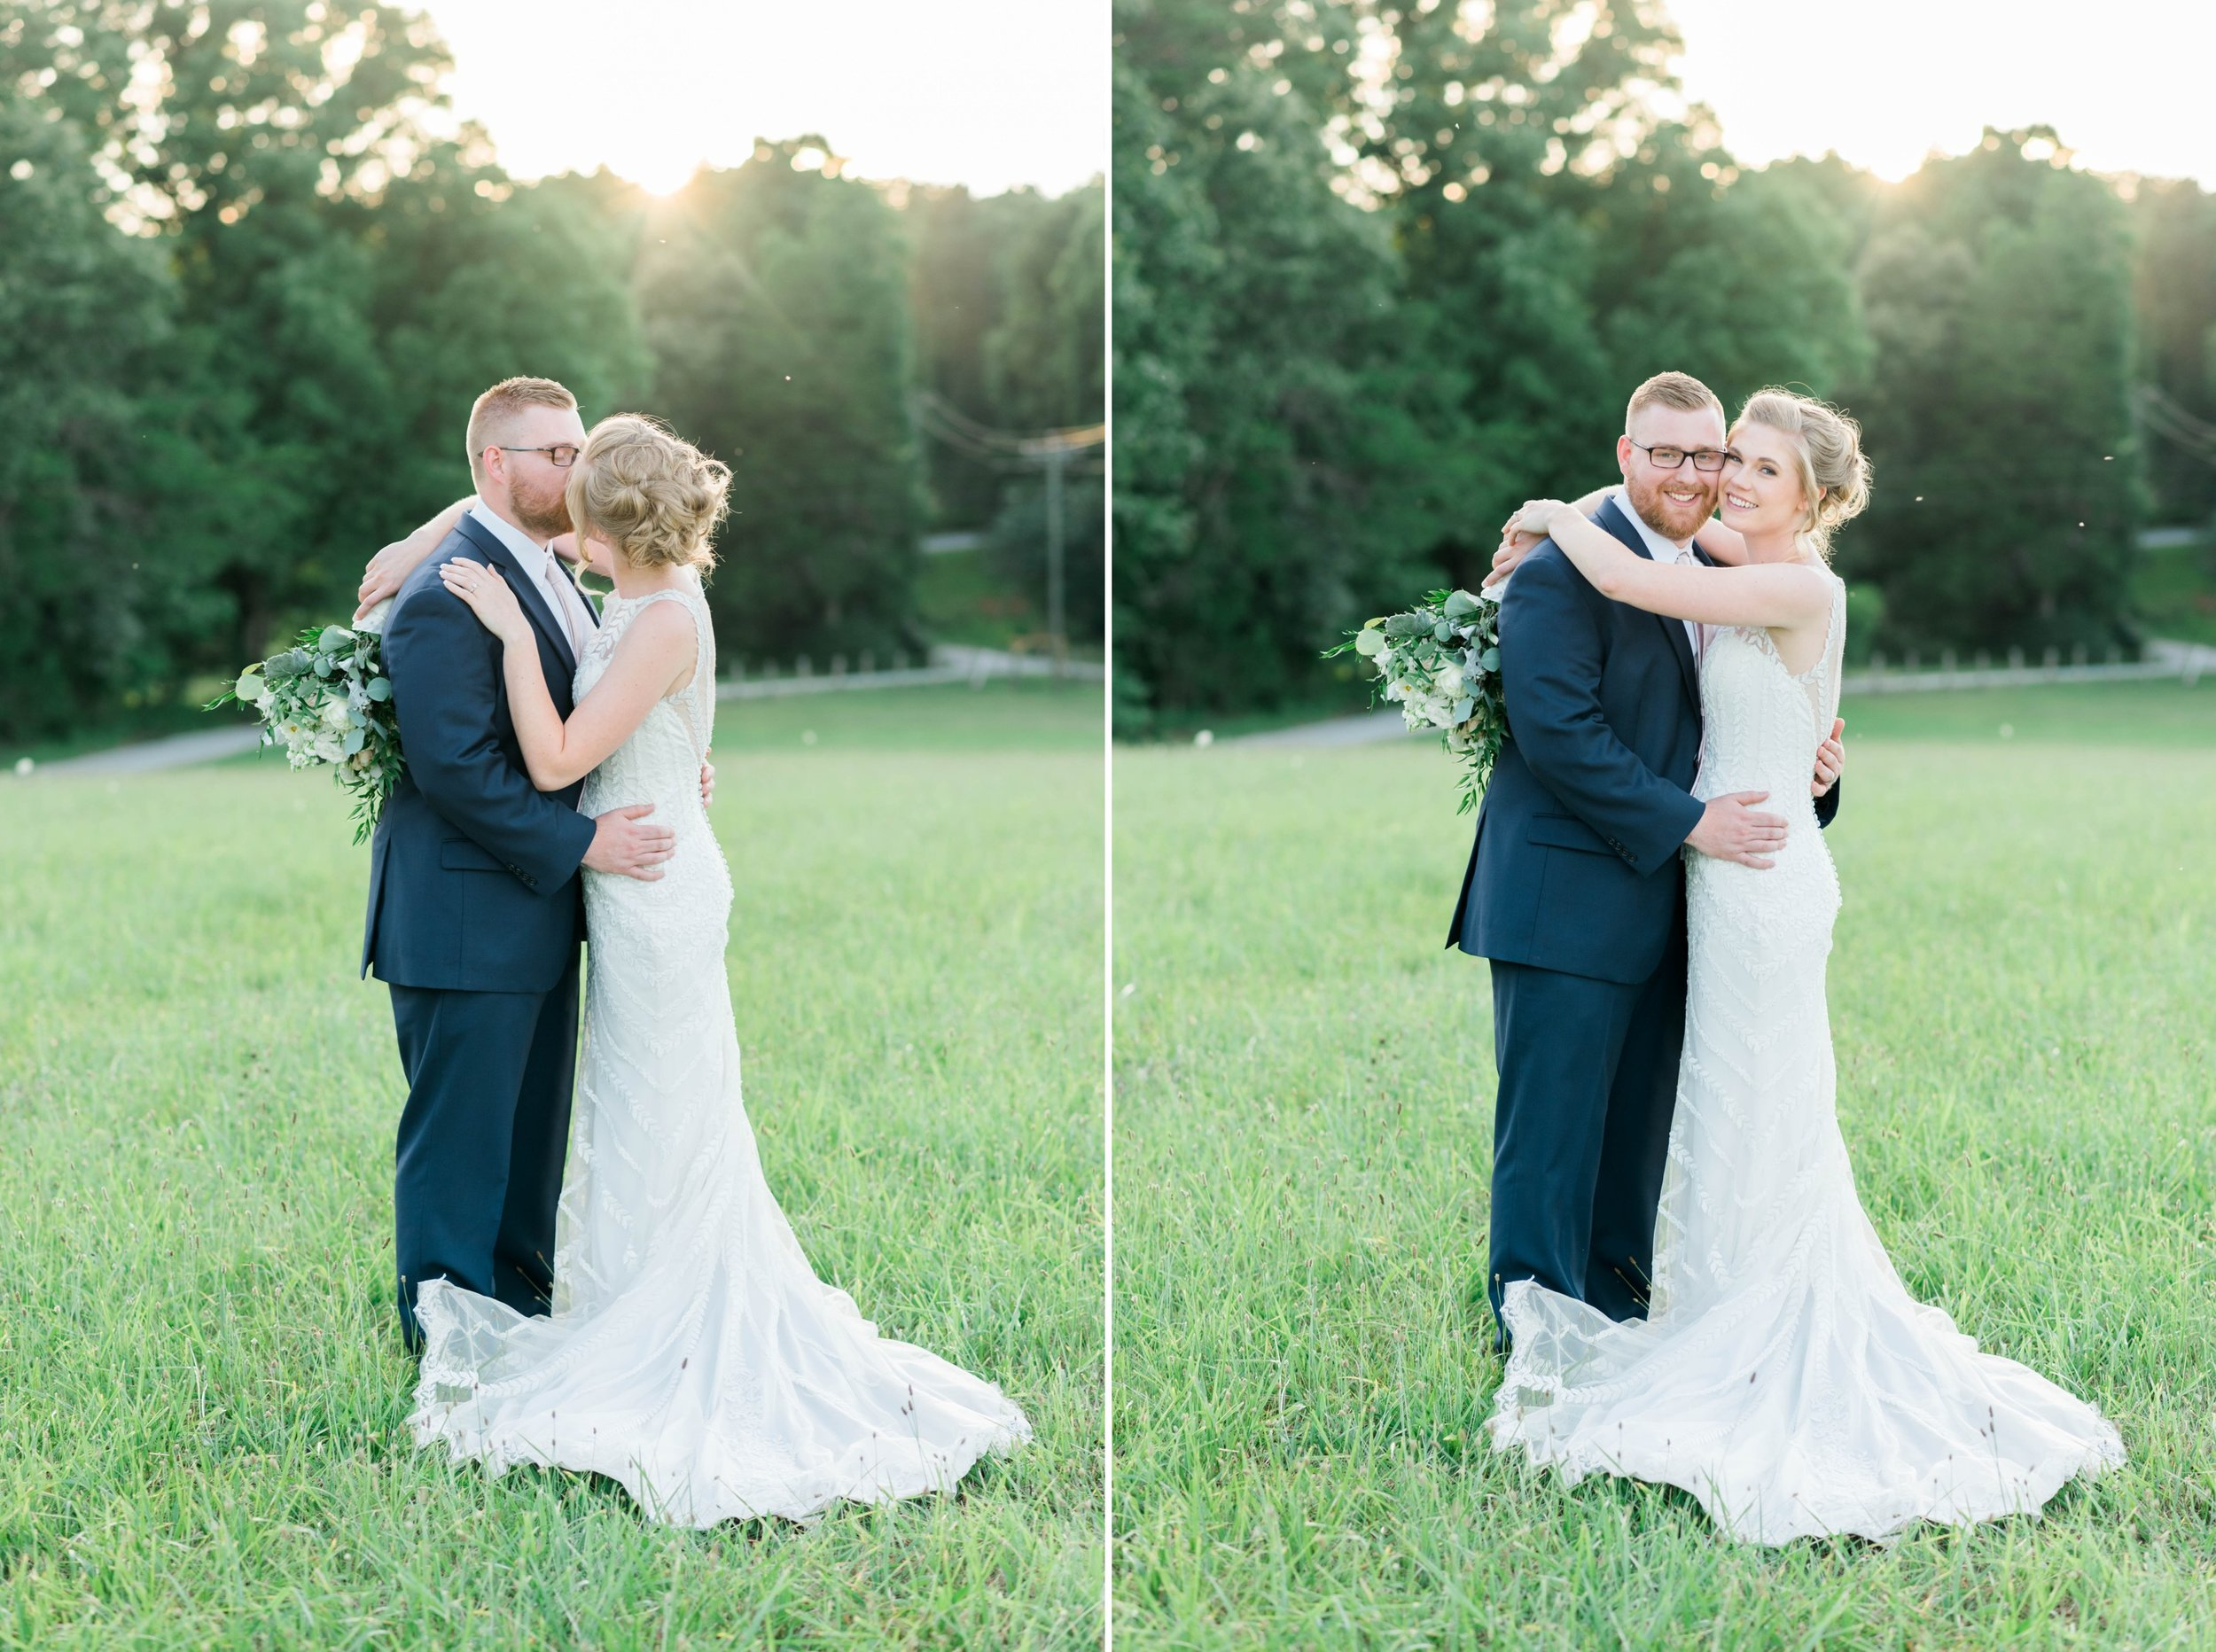 SorellaFarms_VirginiaWeddingPhotographer_BarnWedding_Lynchburgweddingphotographer_DanielleTyler 26.jpg